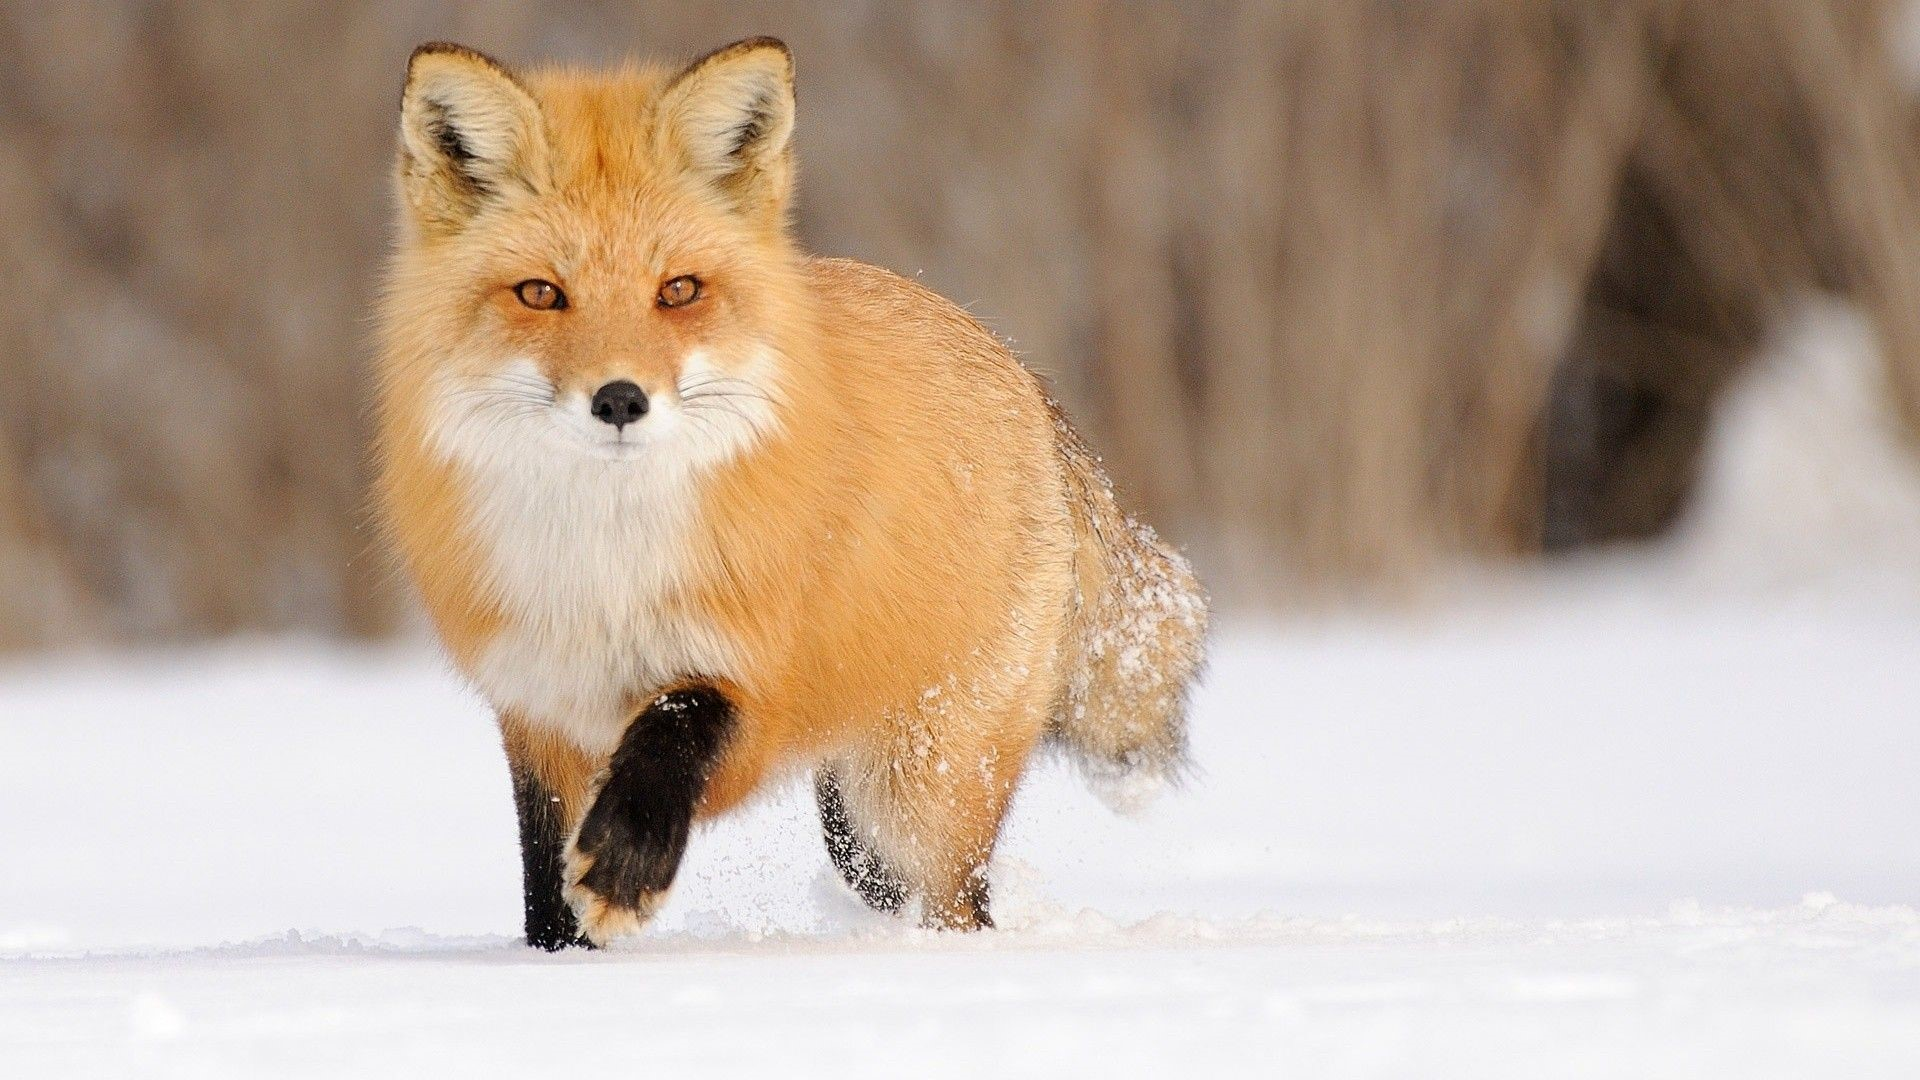 Fox Phone Wallpapers Hd Wallpapers Hd Backgroundstumblr